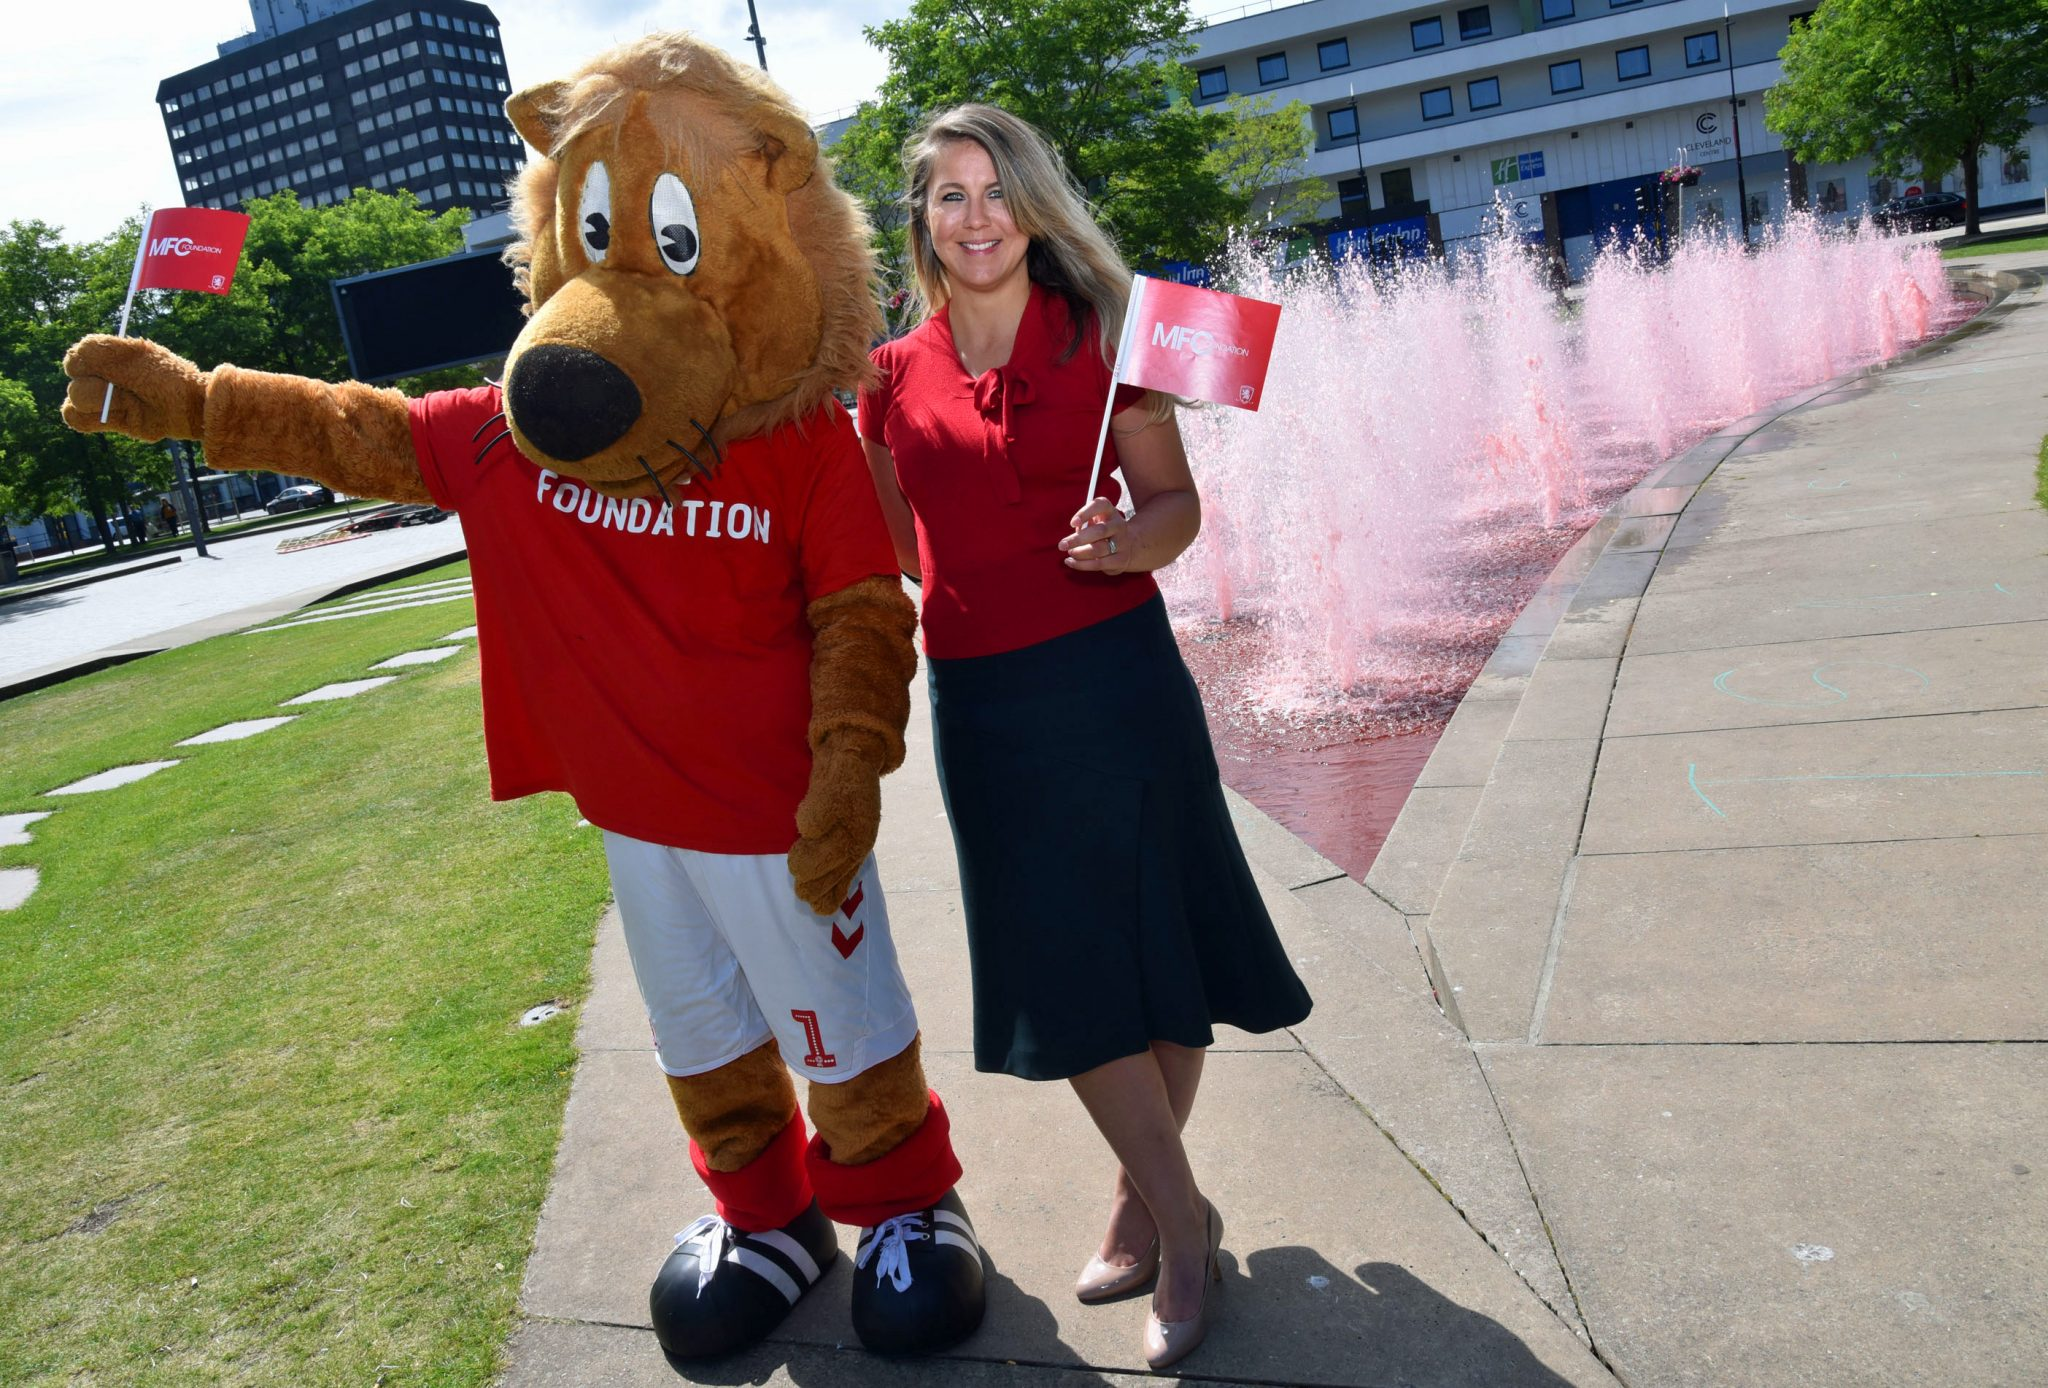 MFC FOUNDATION AND MIDDLESBROUGH COUNCIL PAINT THE TOWN RED